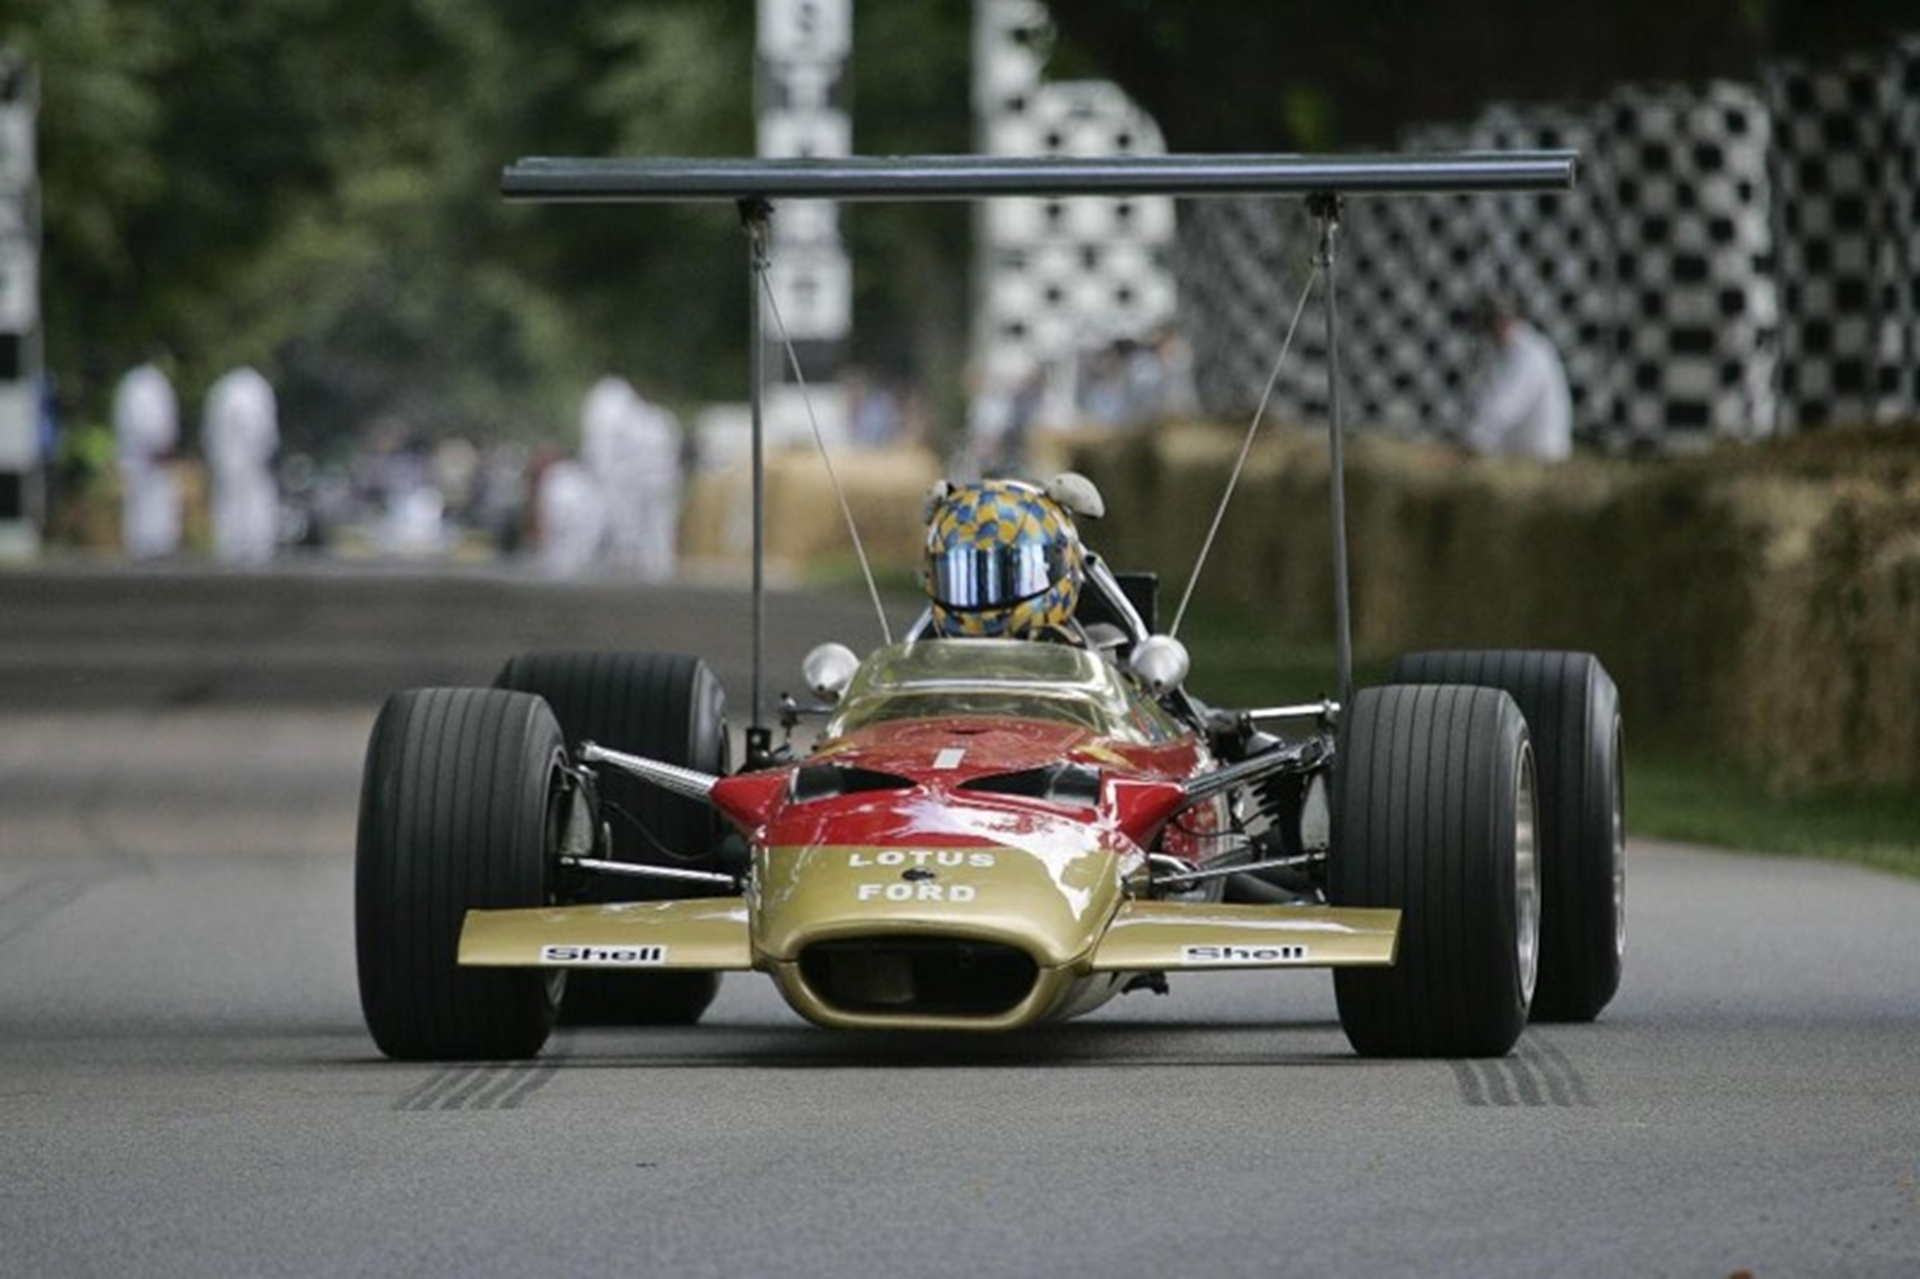 Lotus_at_the_Goodwood_Festival-2012